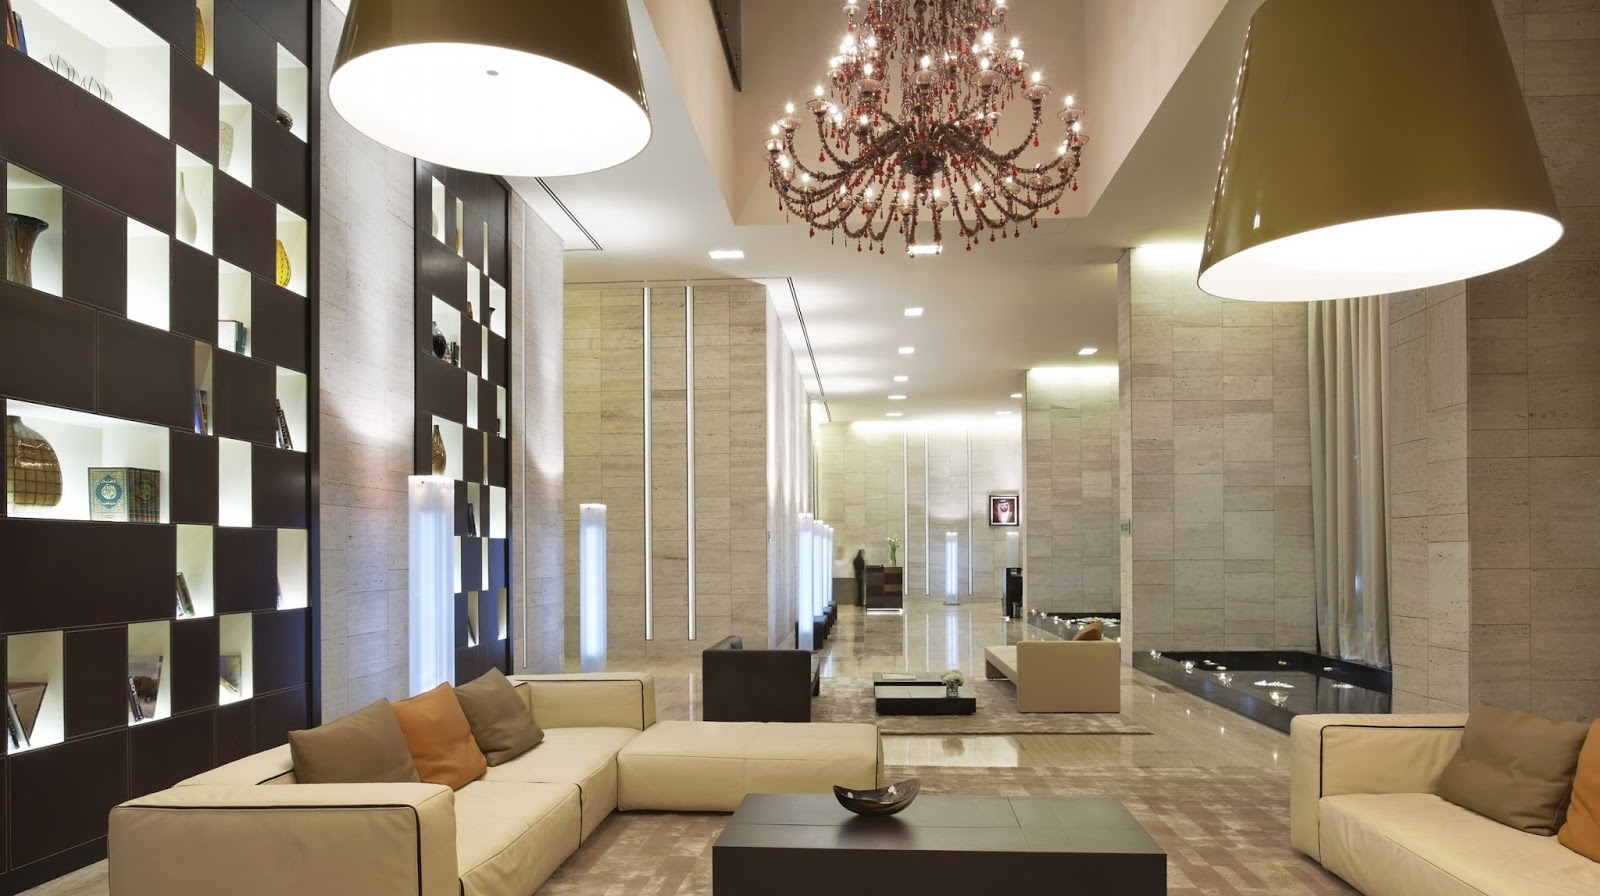 Best interior design companies and interior designers in dubai for Best interior decorators